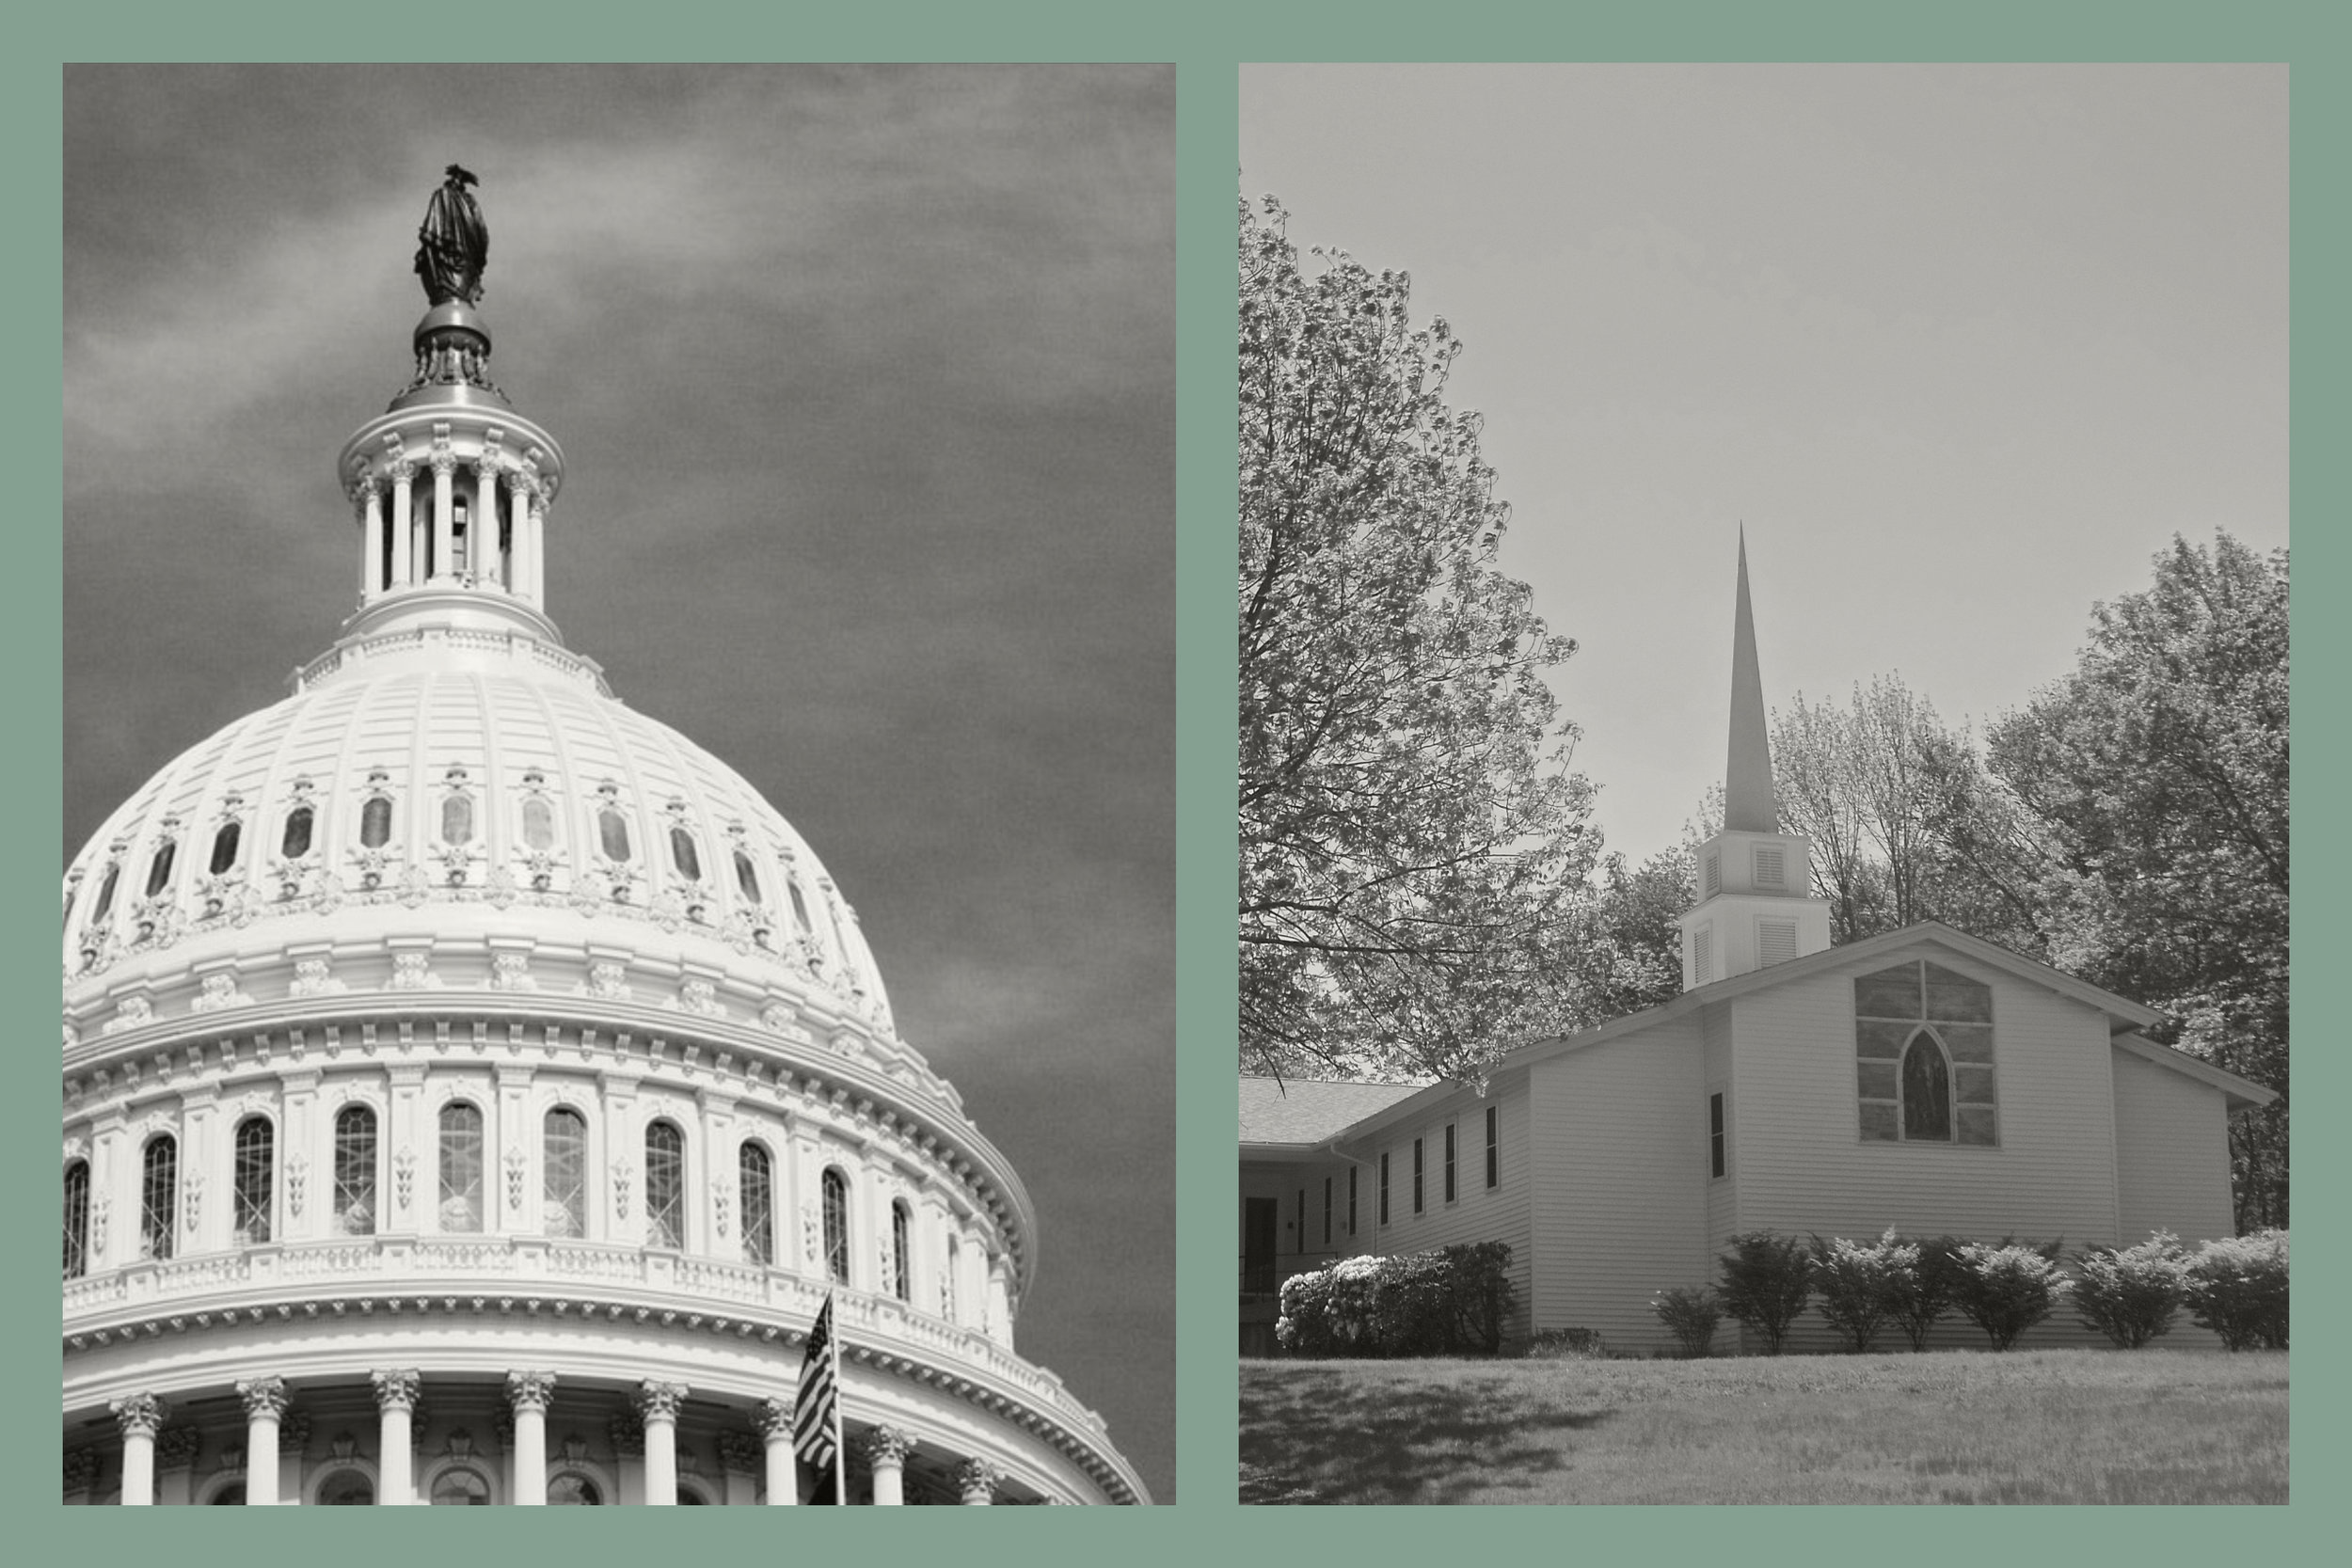 Pictured: The US Capitol building and the Advent Christian church in North Scituate, RI